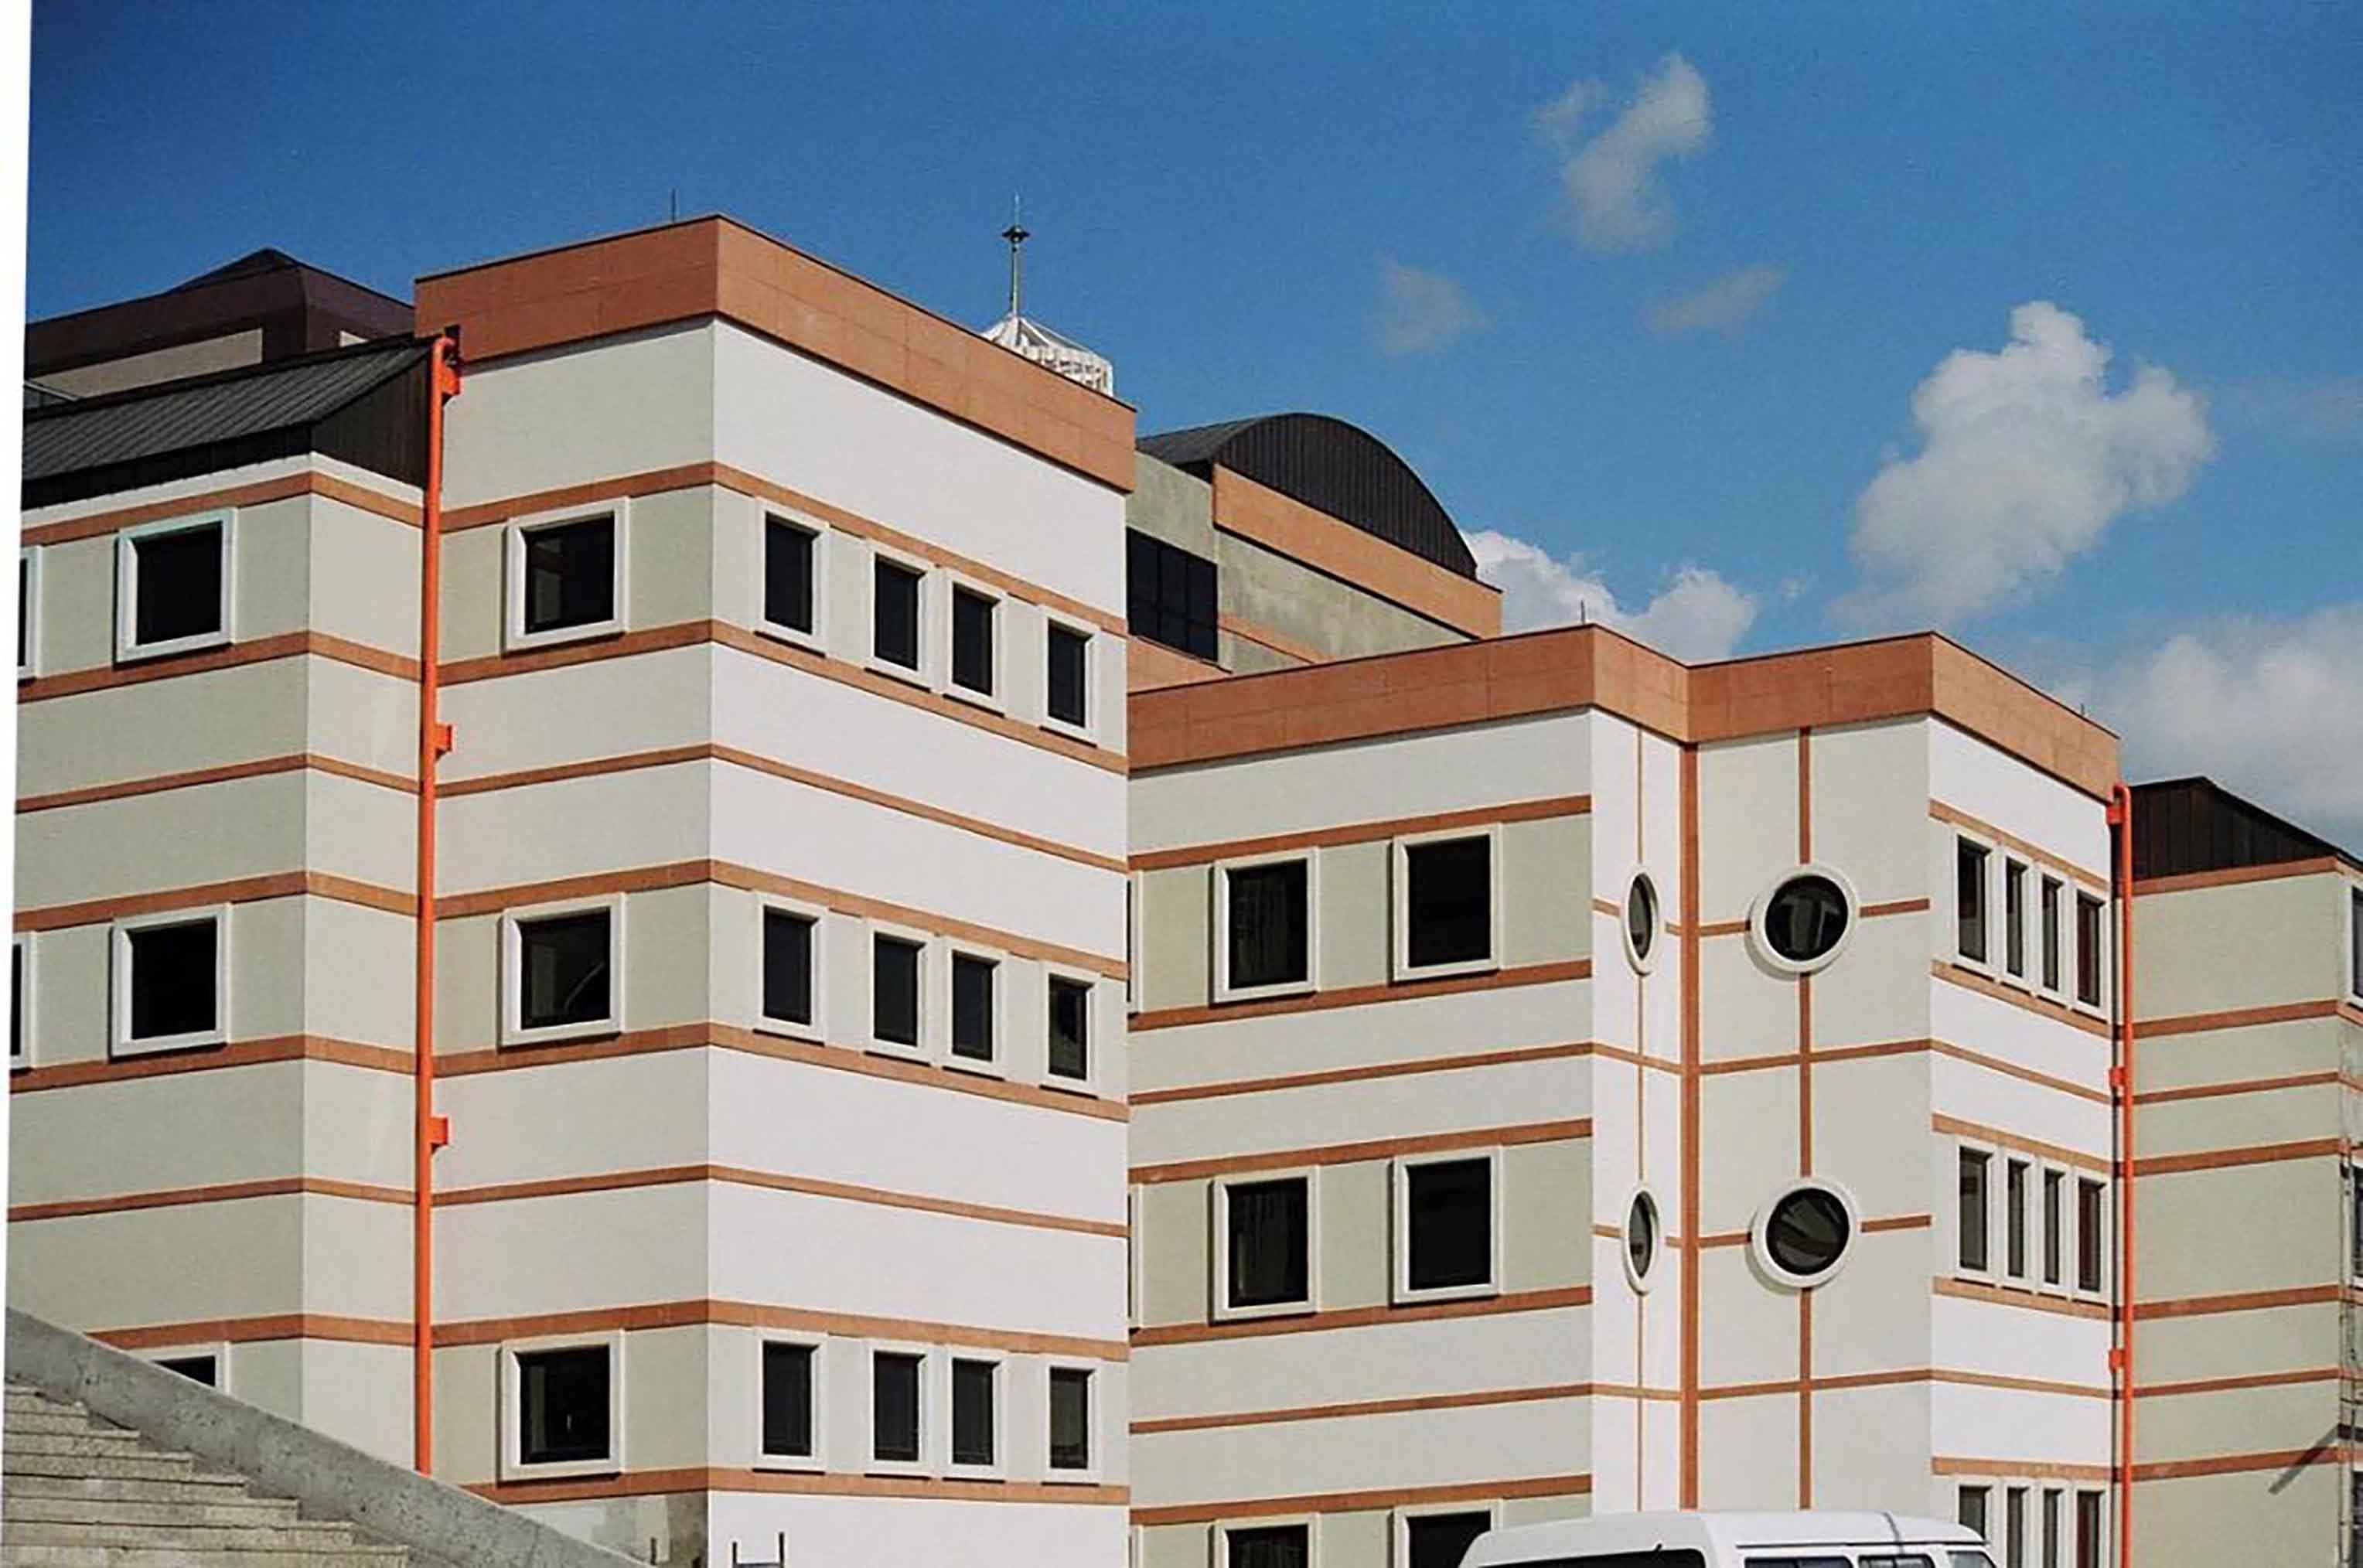 Fibrobeton Kocaeli University Medical Faculty Hospital